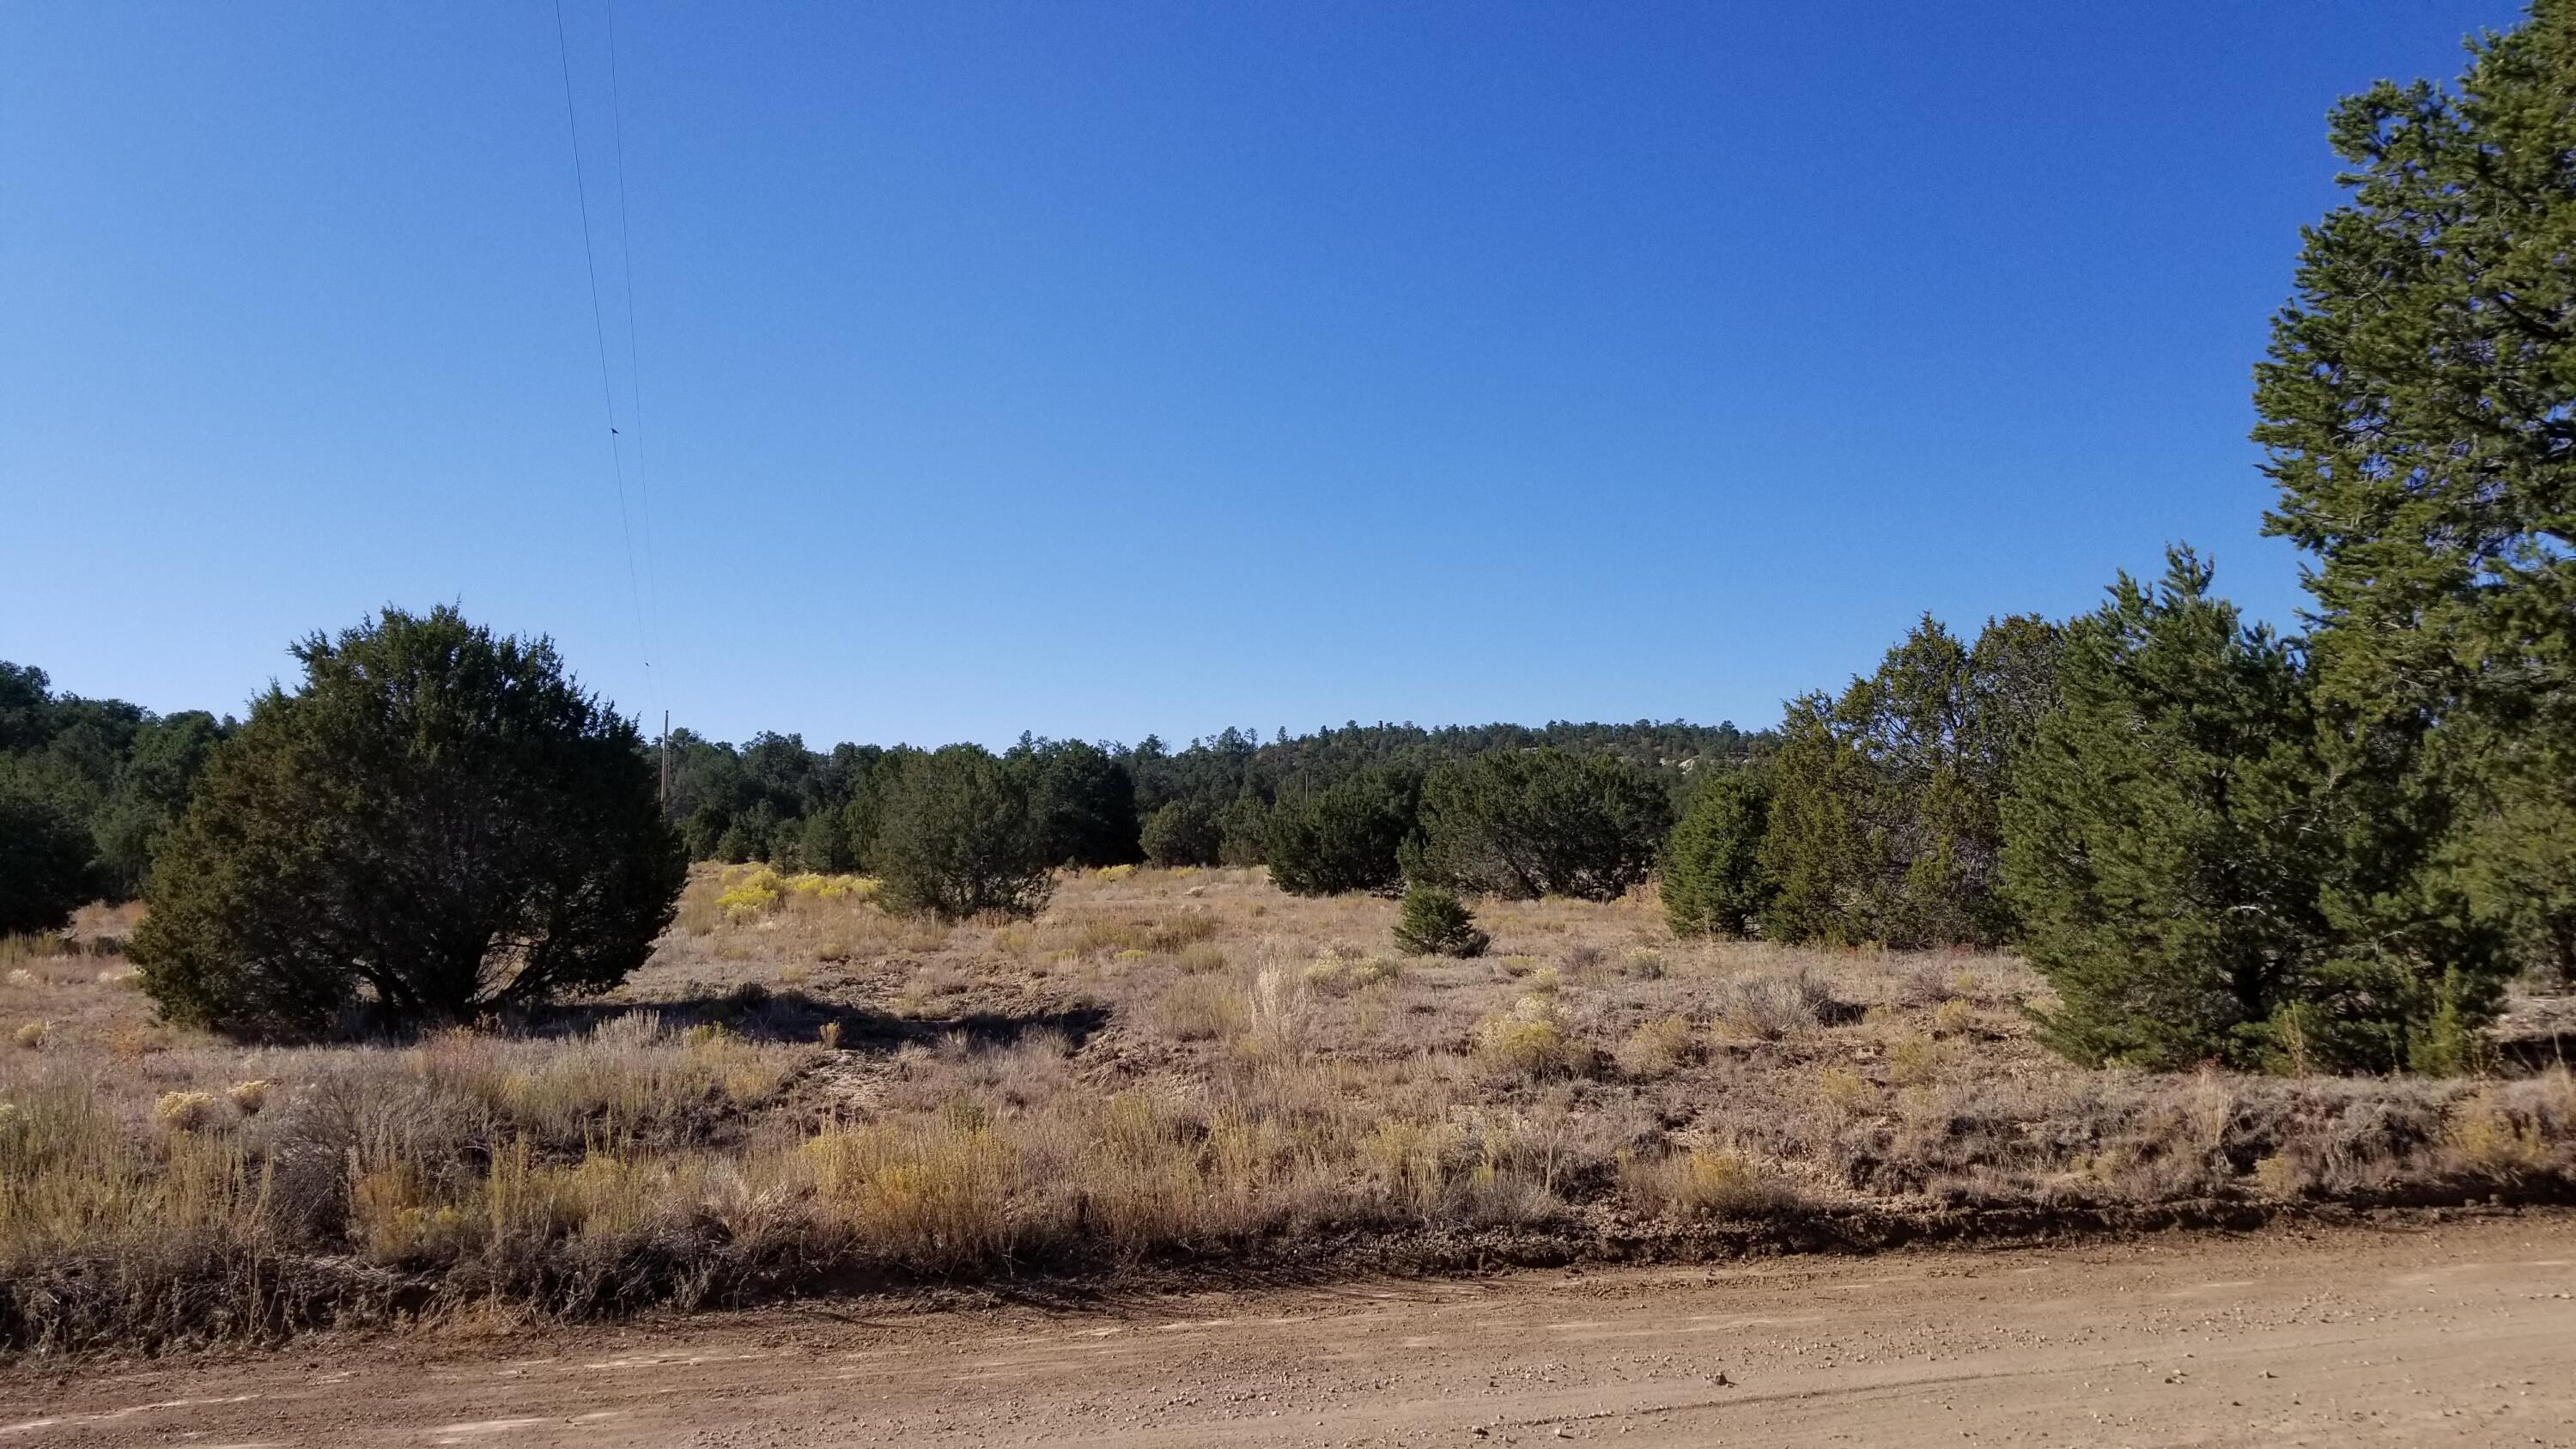 Lot 11 Misty Lane - Candy Kitchen, Property Photo - Ramah, NM real estate listing